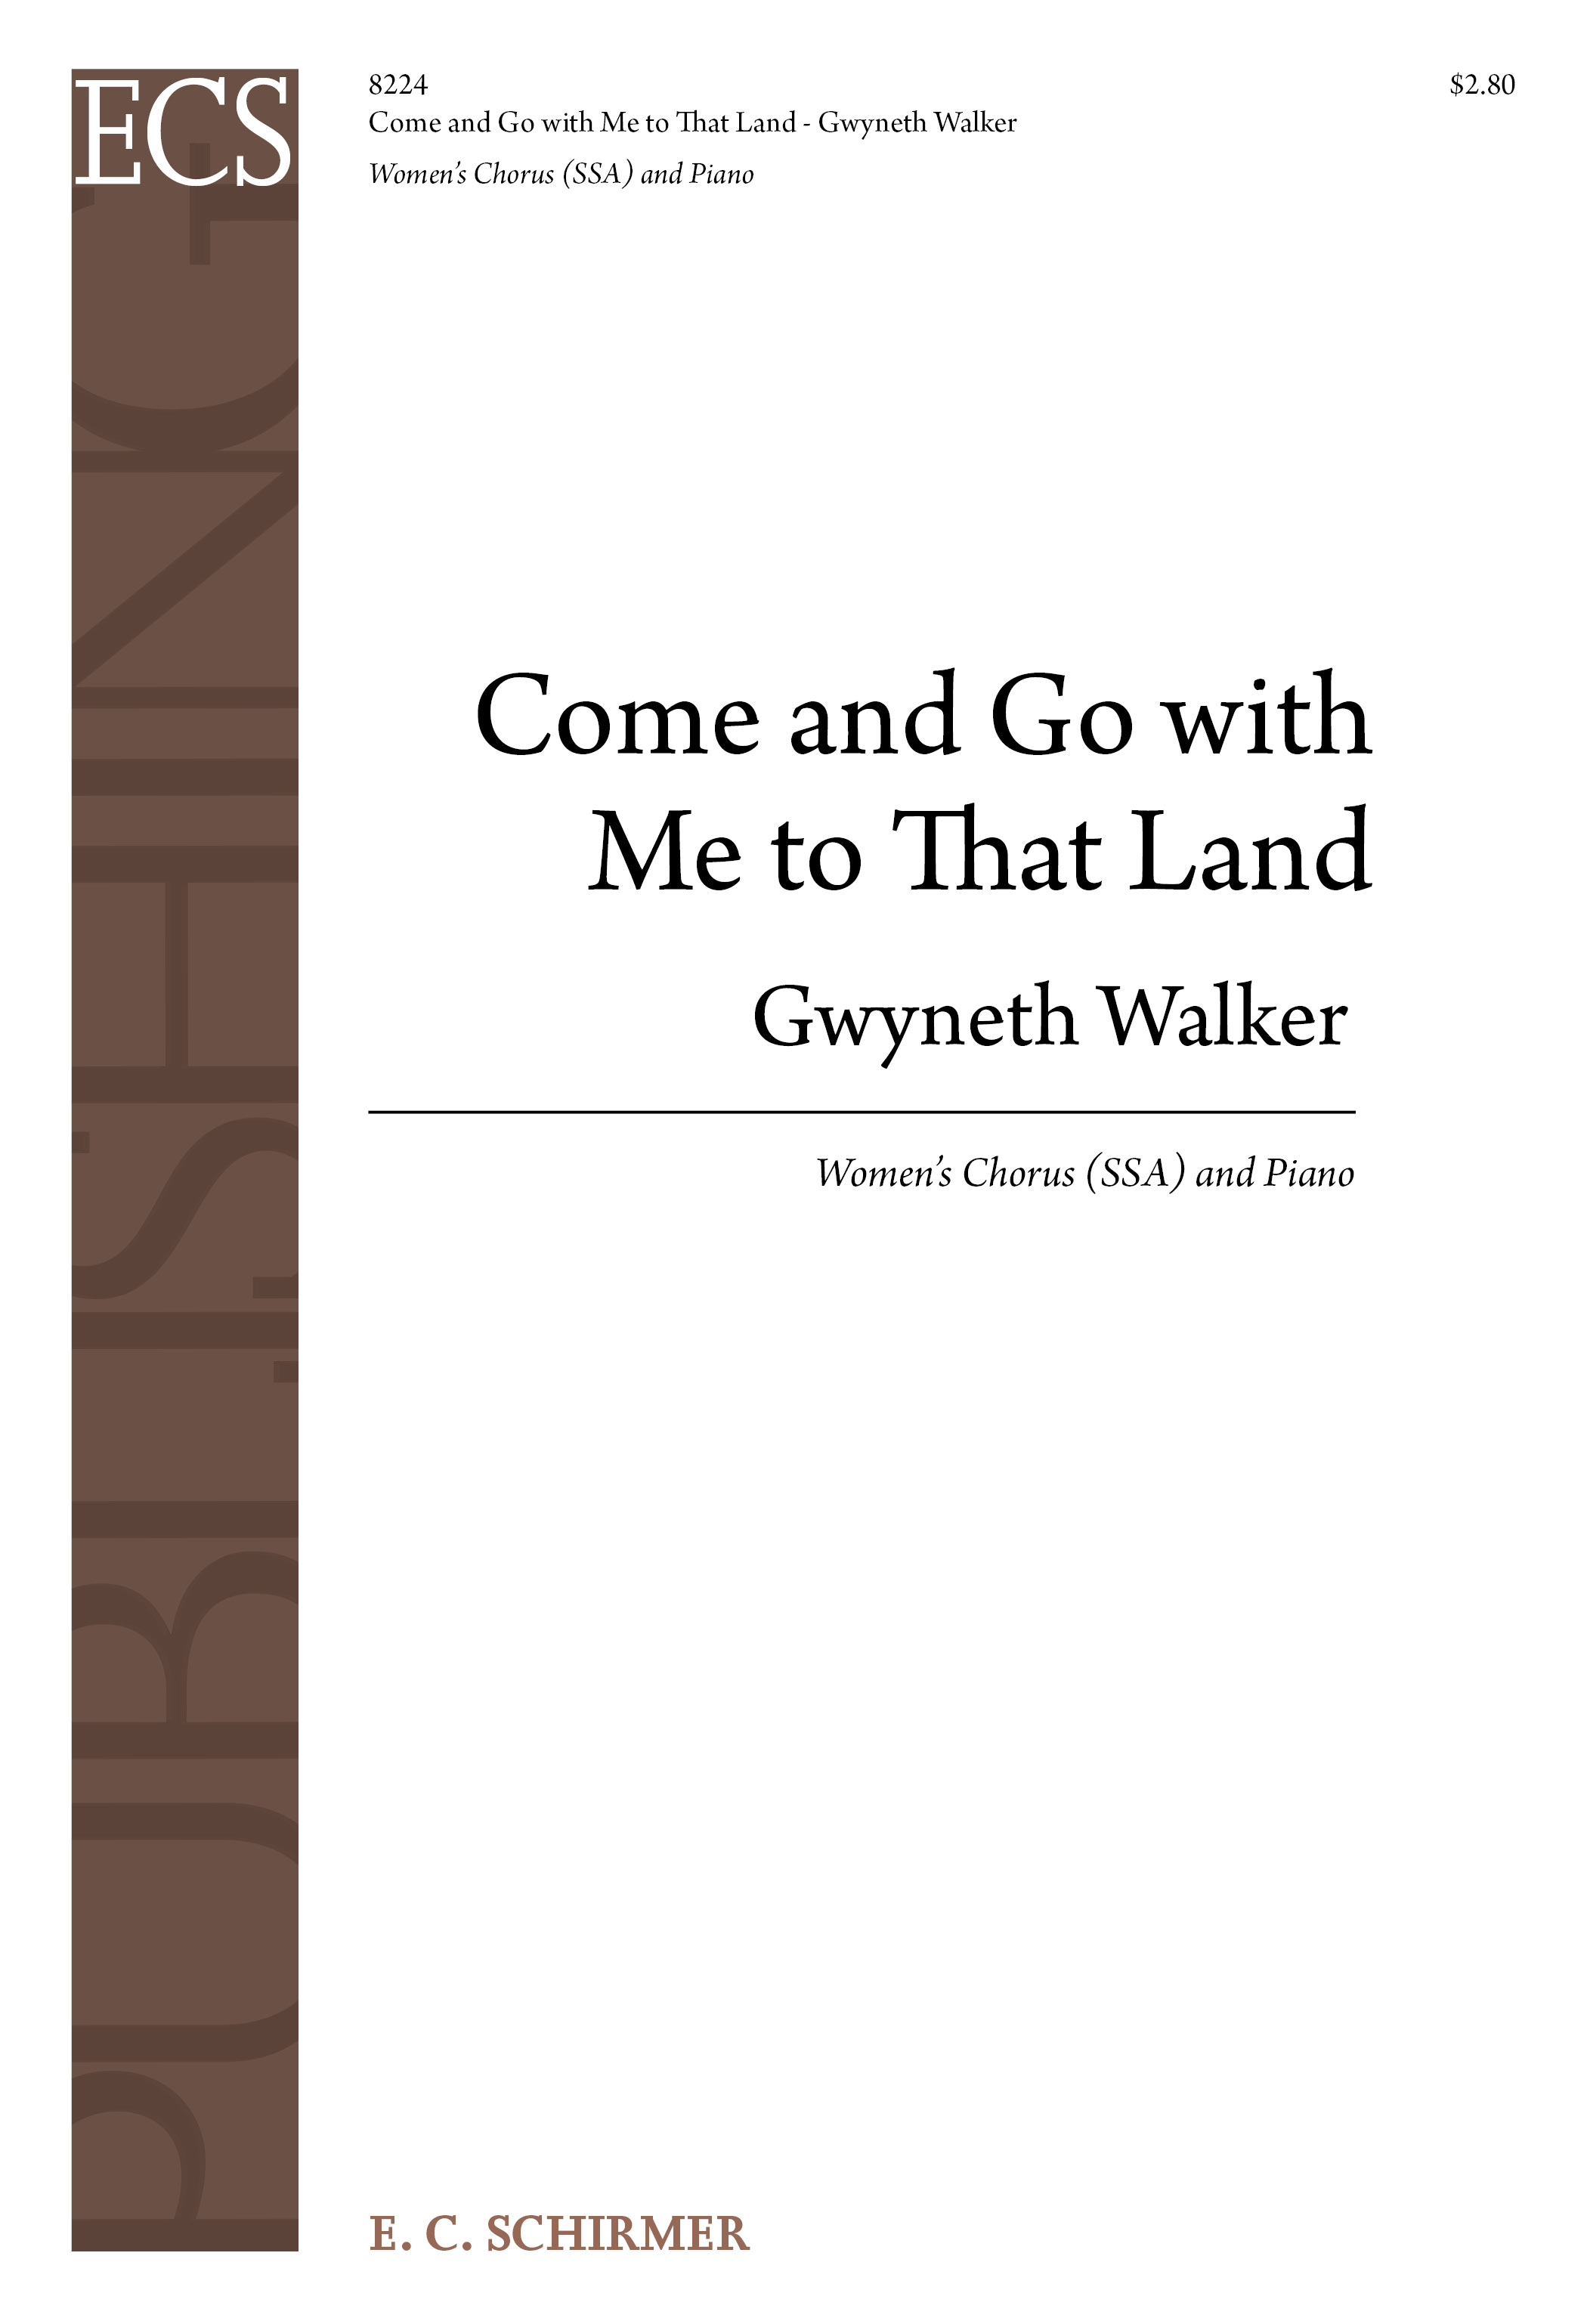 Gospel Songs: Come and Go with Me to That Land : SSA : Gwyneth Walker : Gwyneth Walker : Sheet Music : 8224